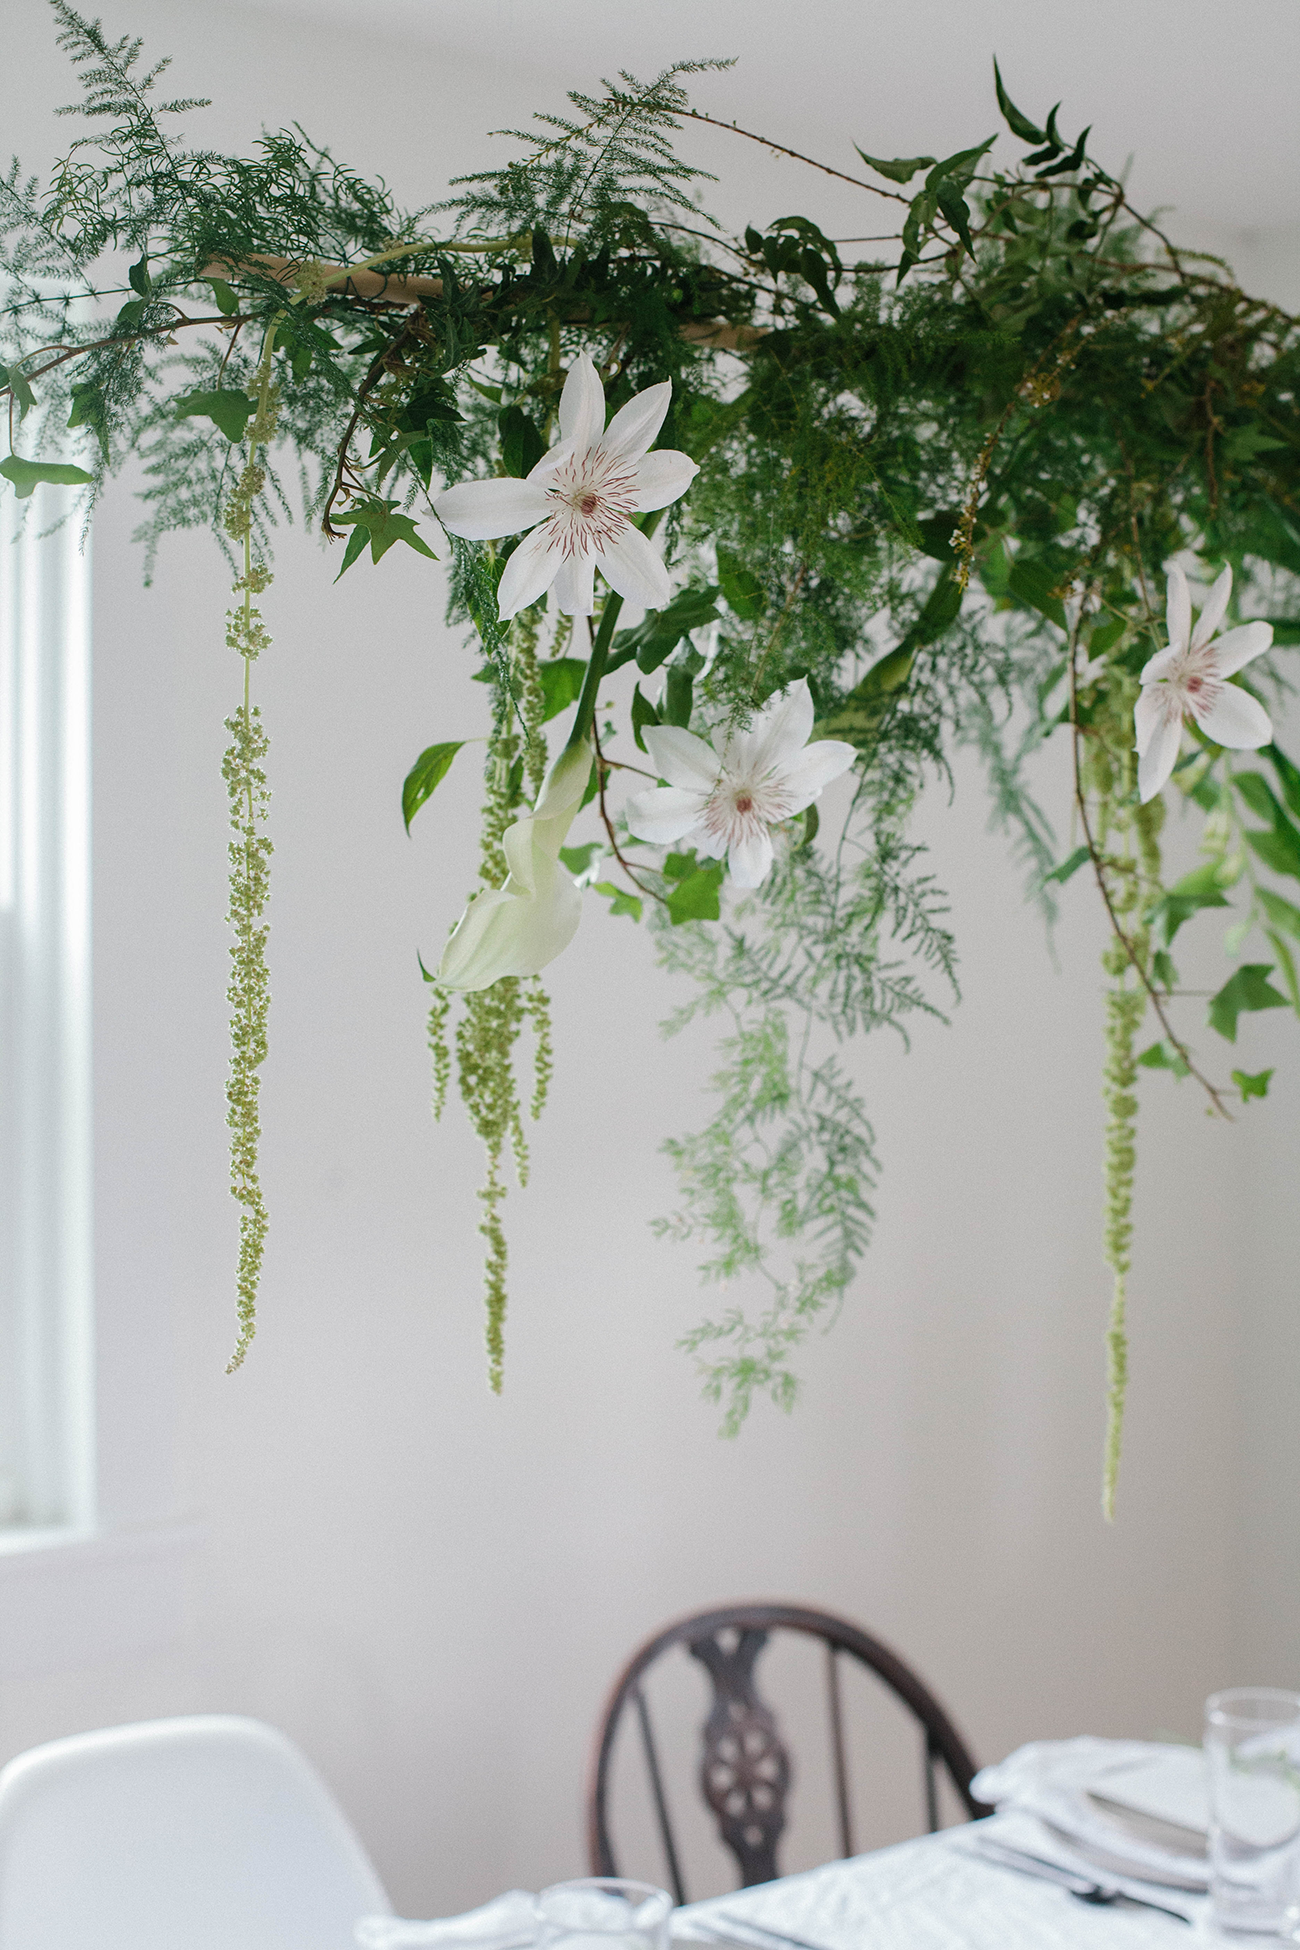 A Daily Something | DIY | Hanging Centerpiece with Greens & Spring ...